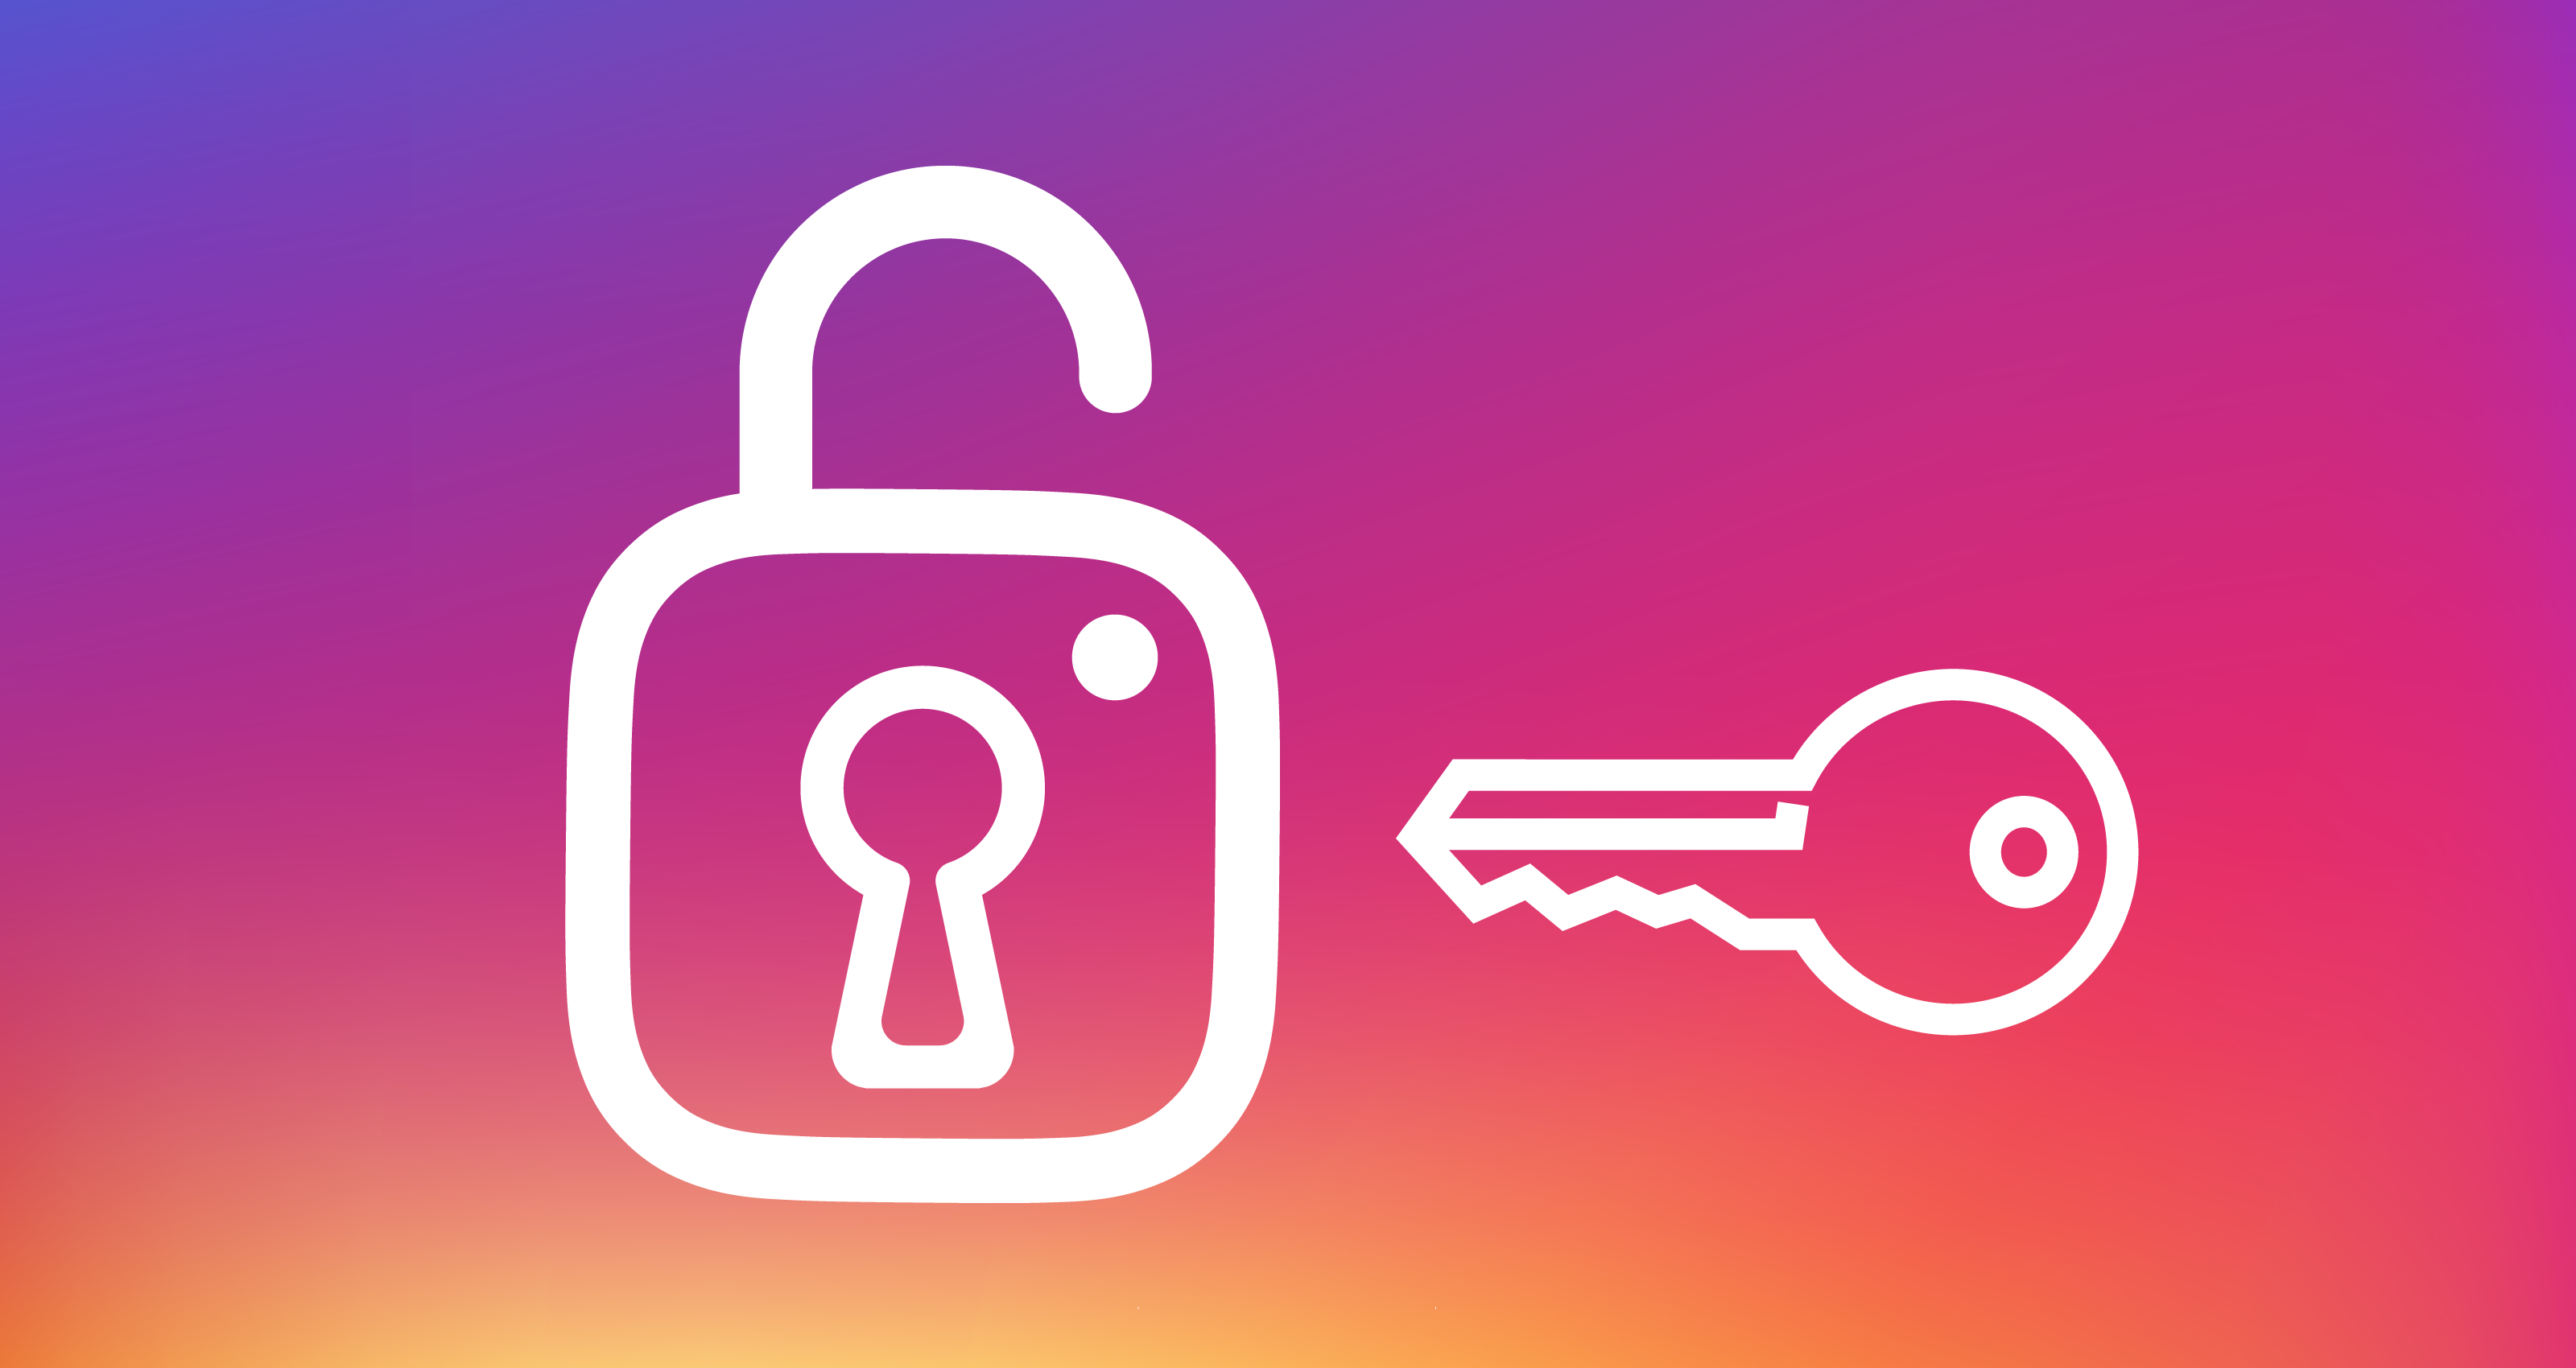 How to download your Instagram photos, Stories, messages & other